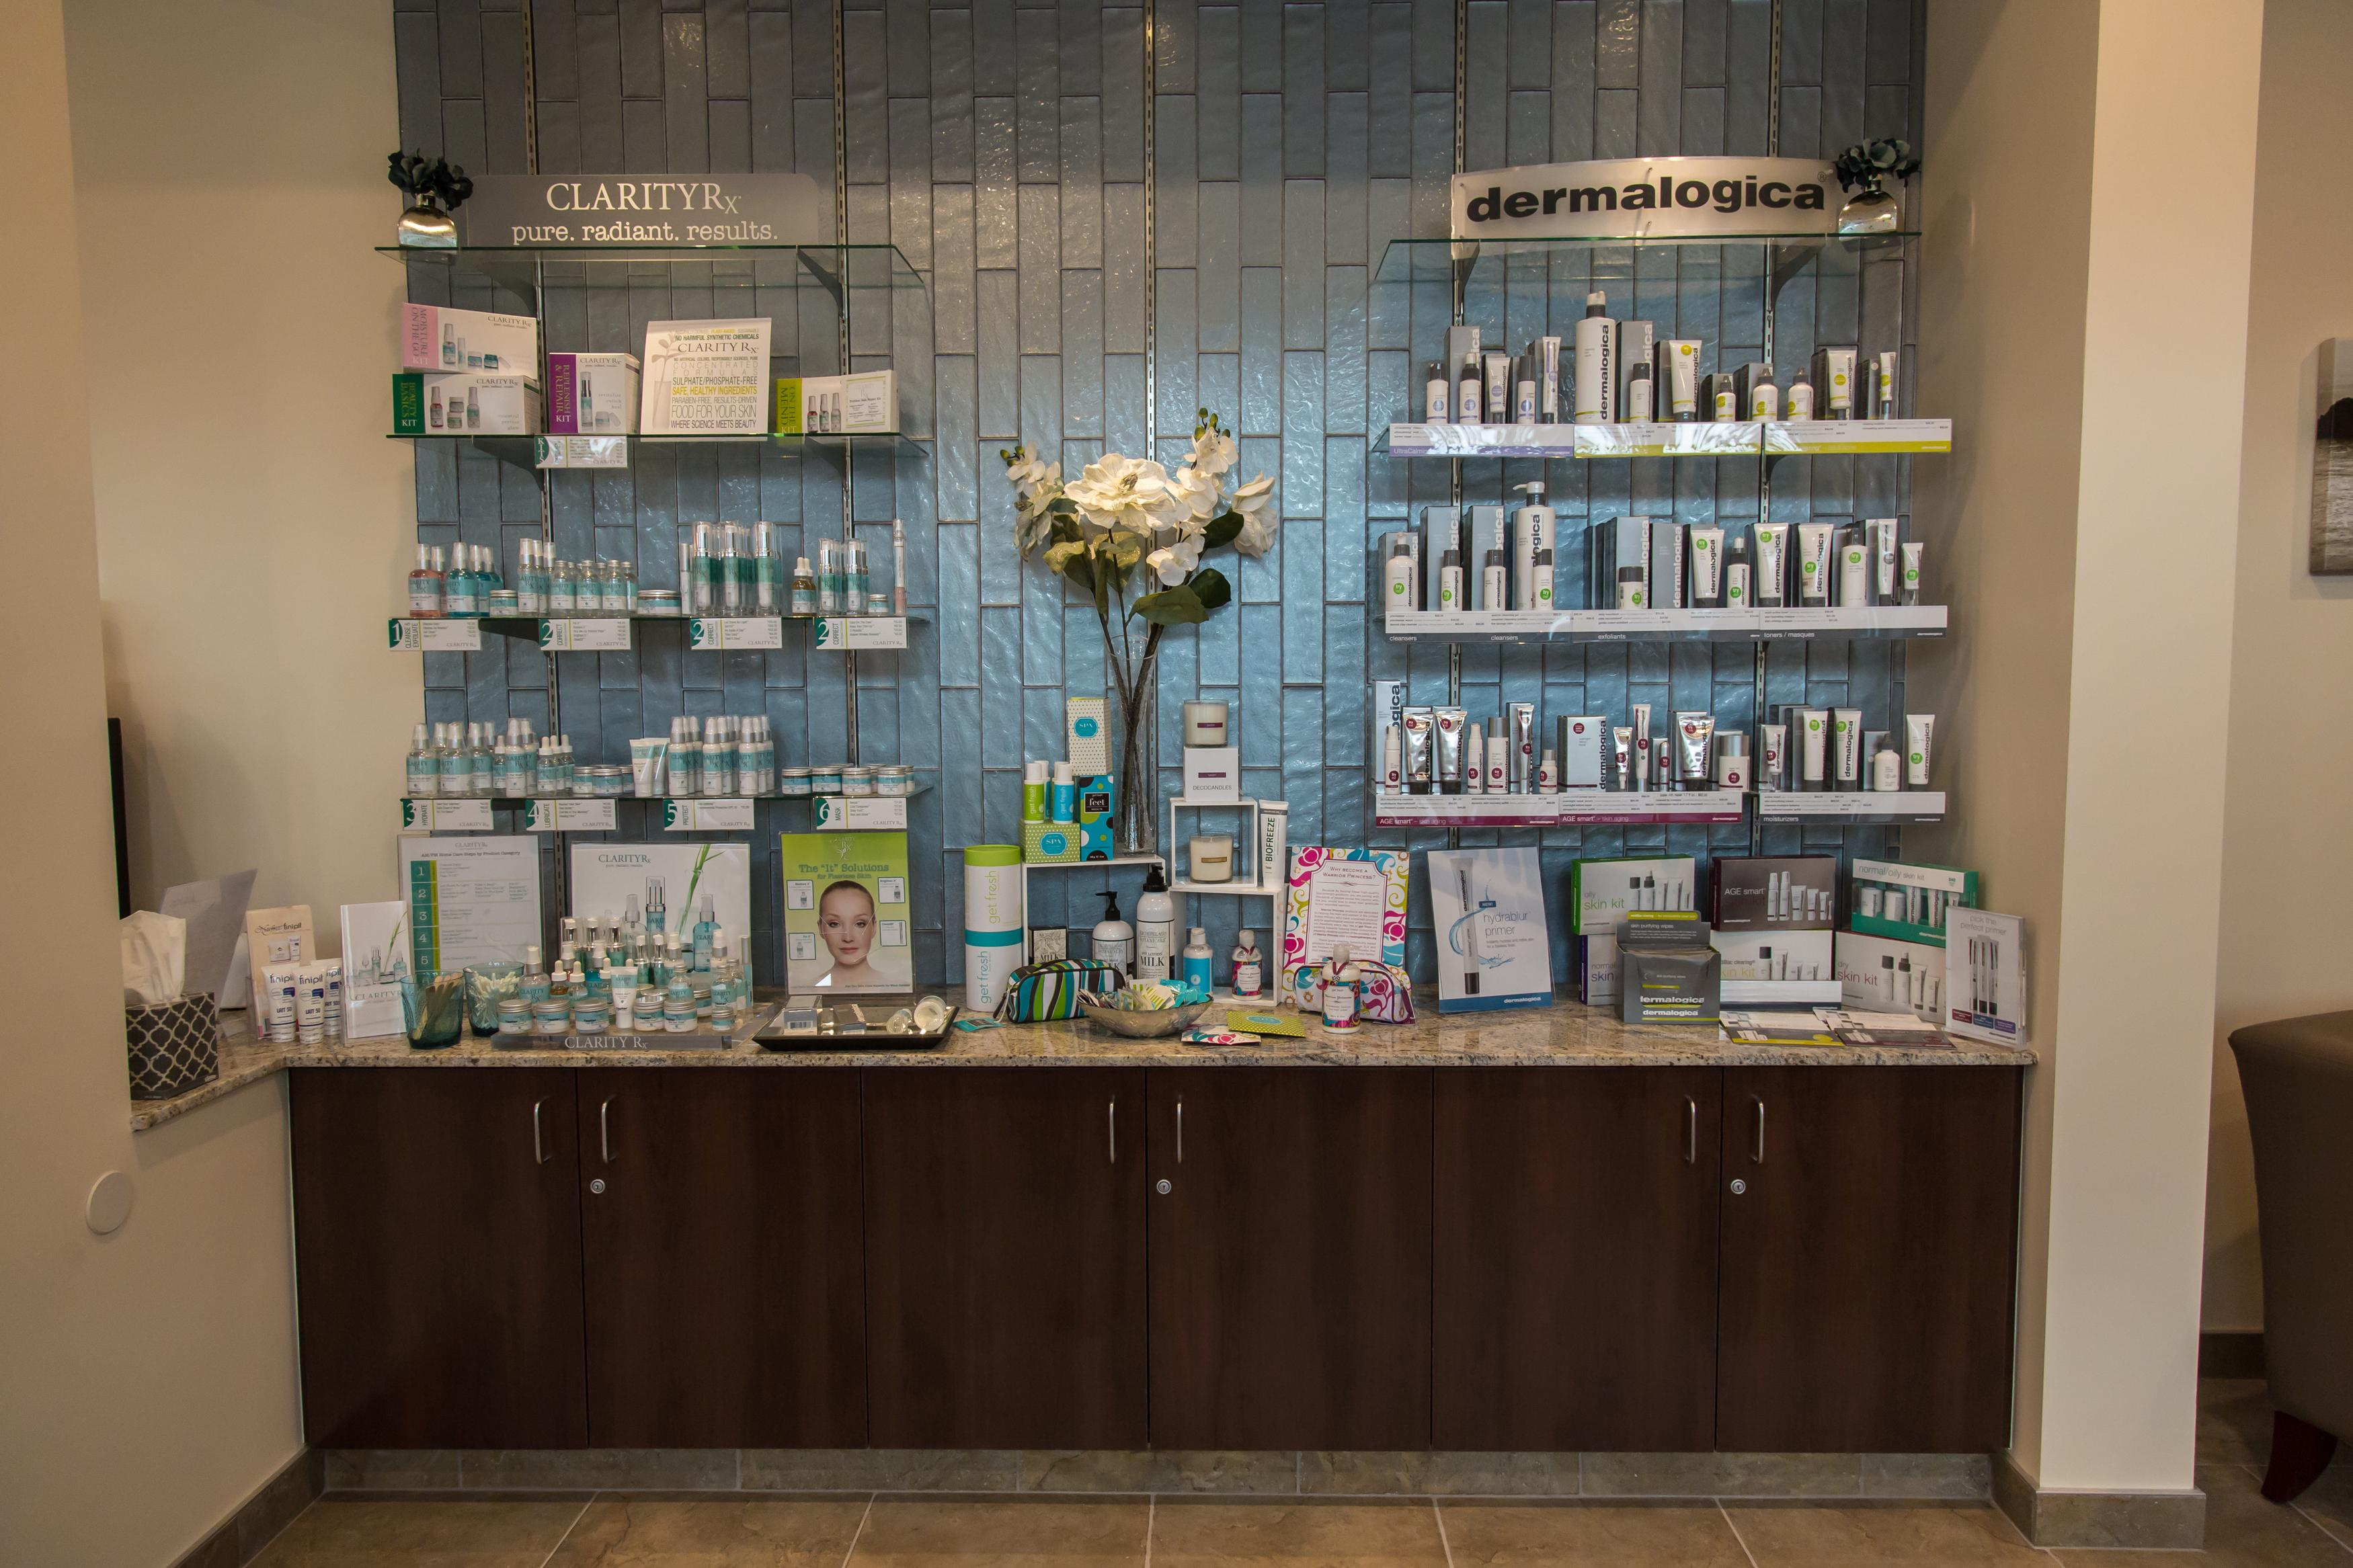 Retail Skin Care Products